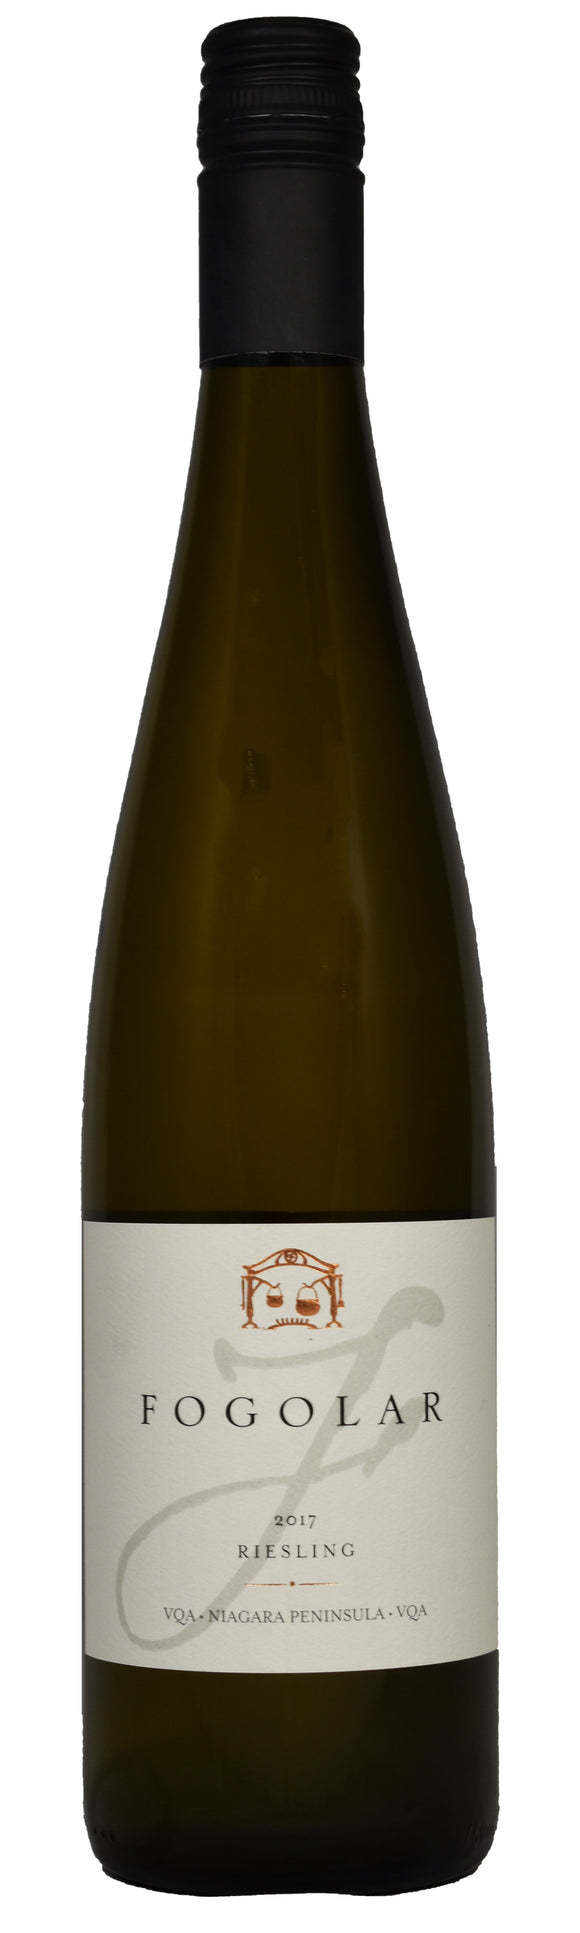 Fogolar Wines 2017 Riesling